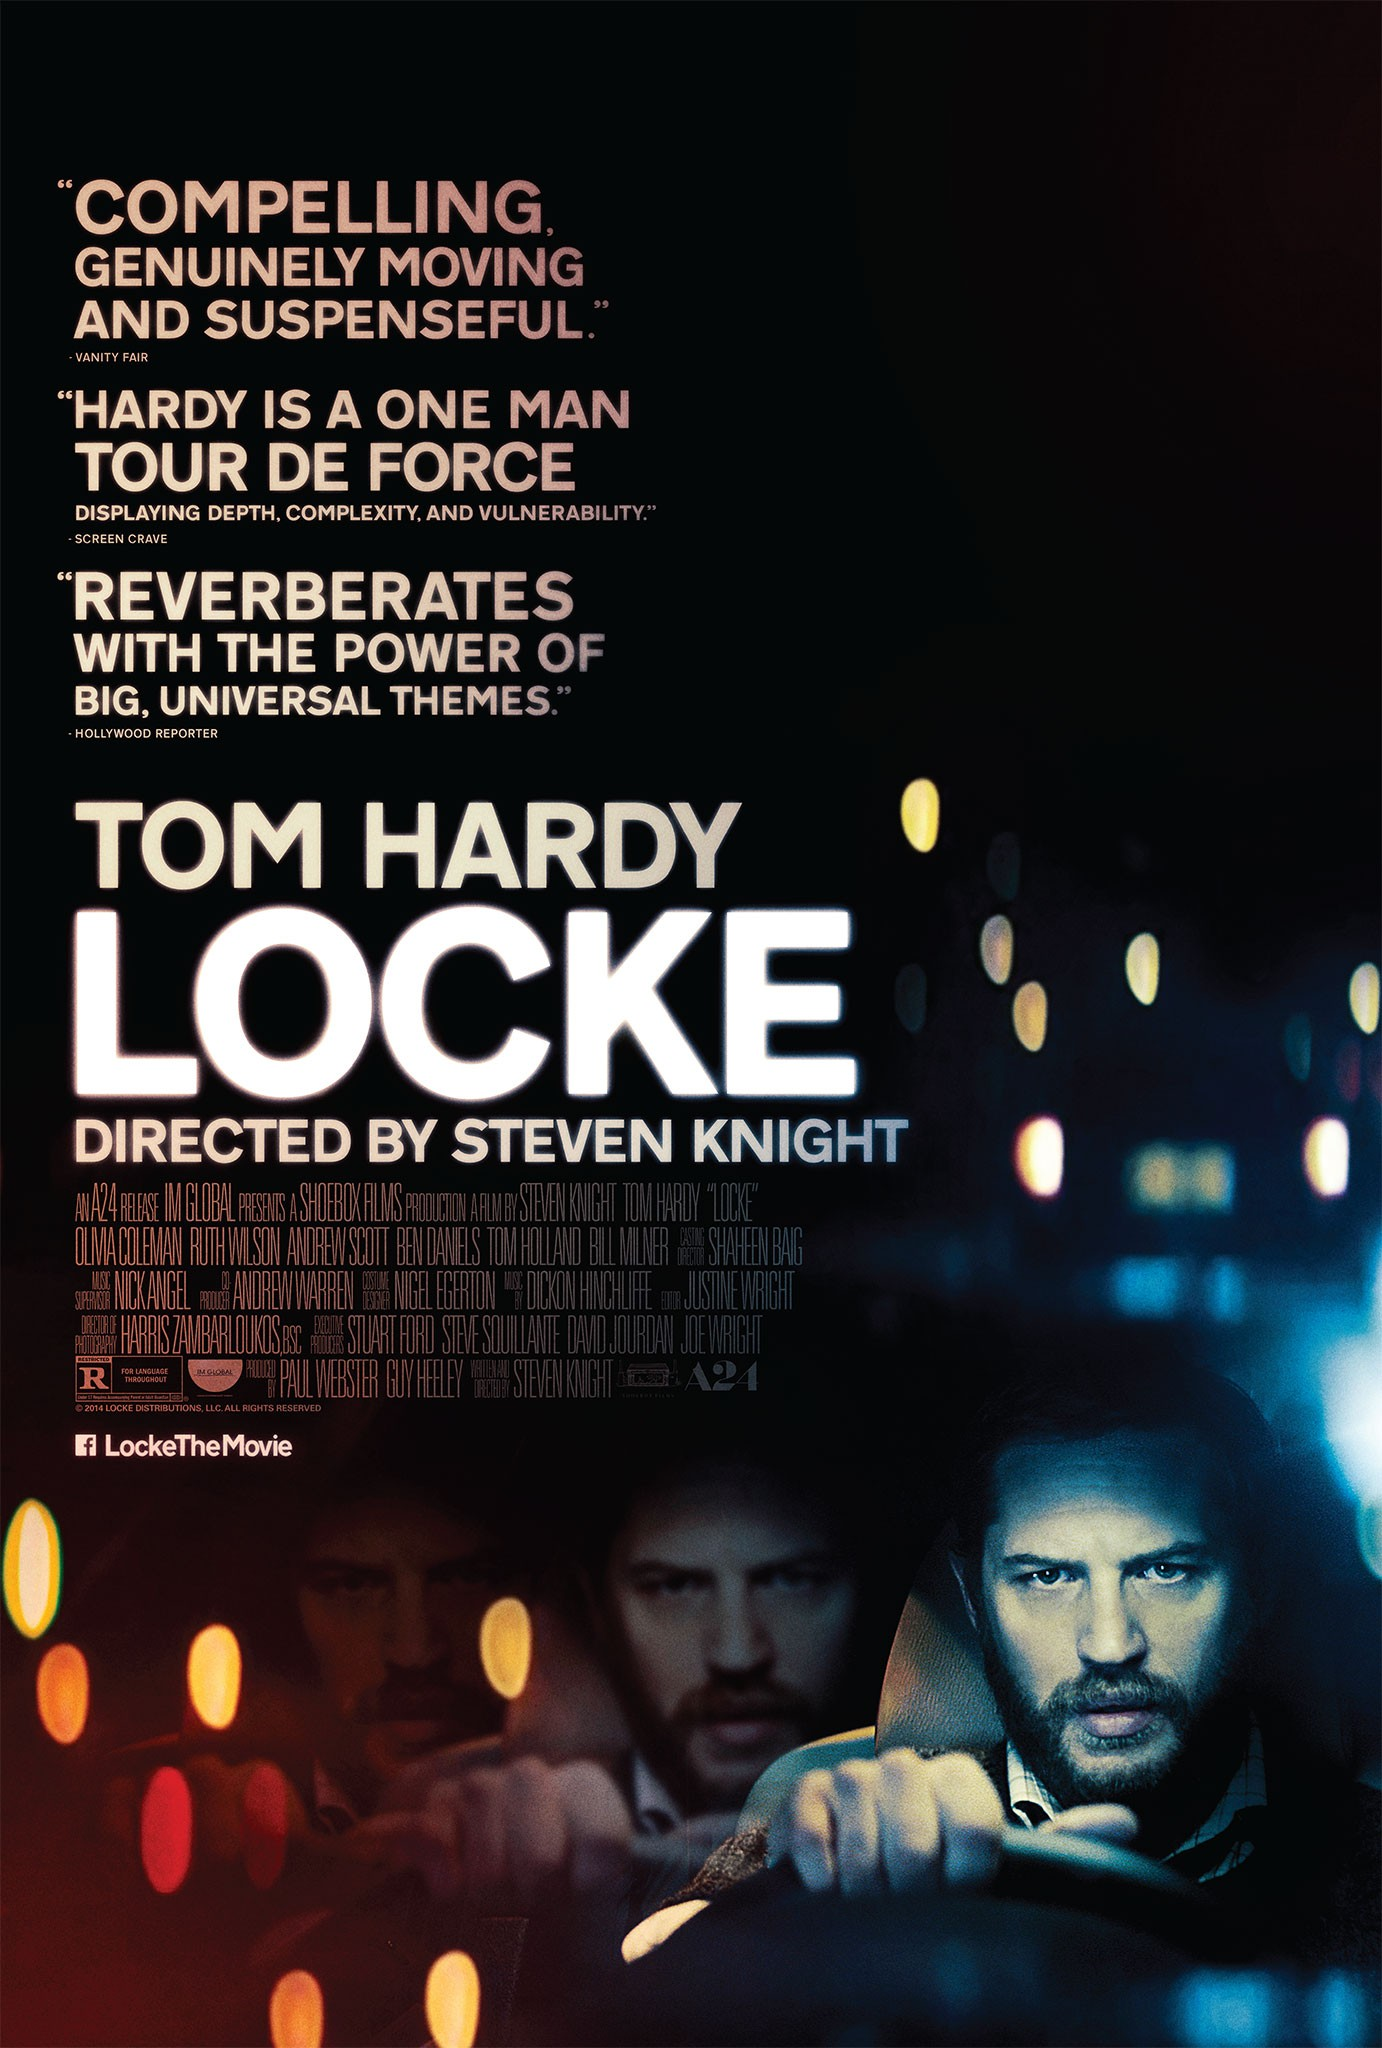 LOCKE-Official Poster Banner PROMO XXLG-06MARCO2014